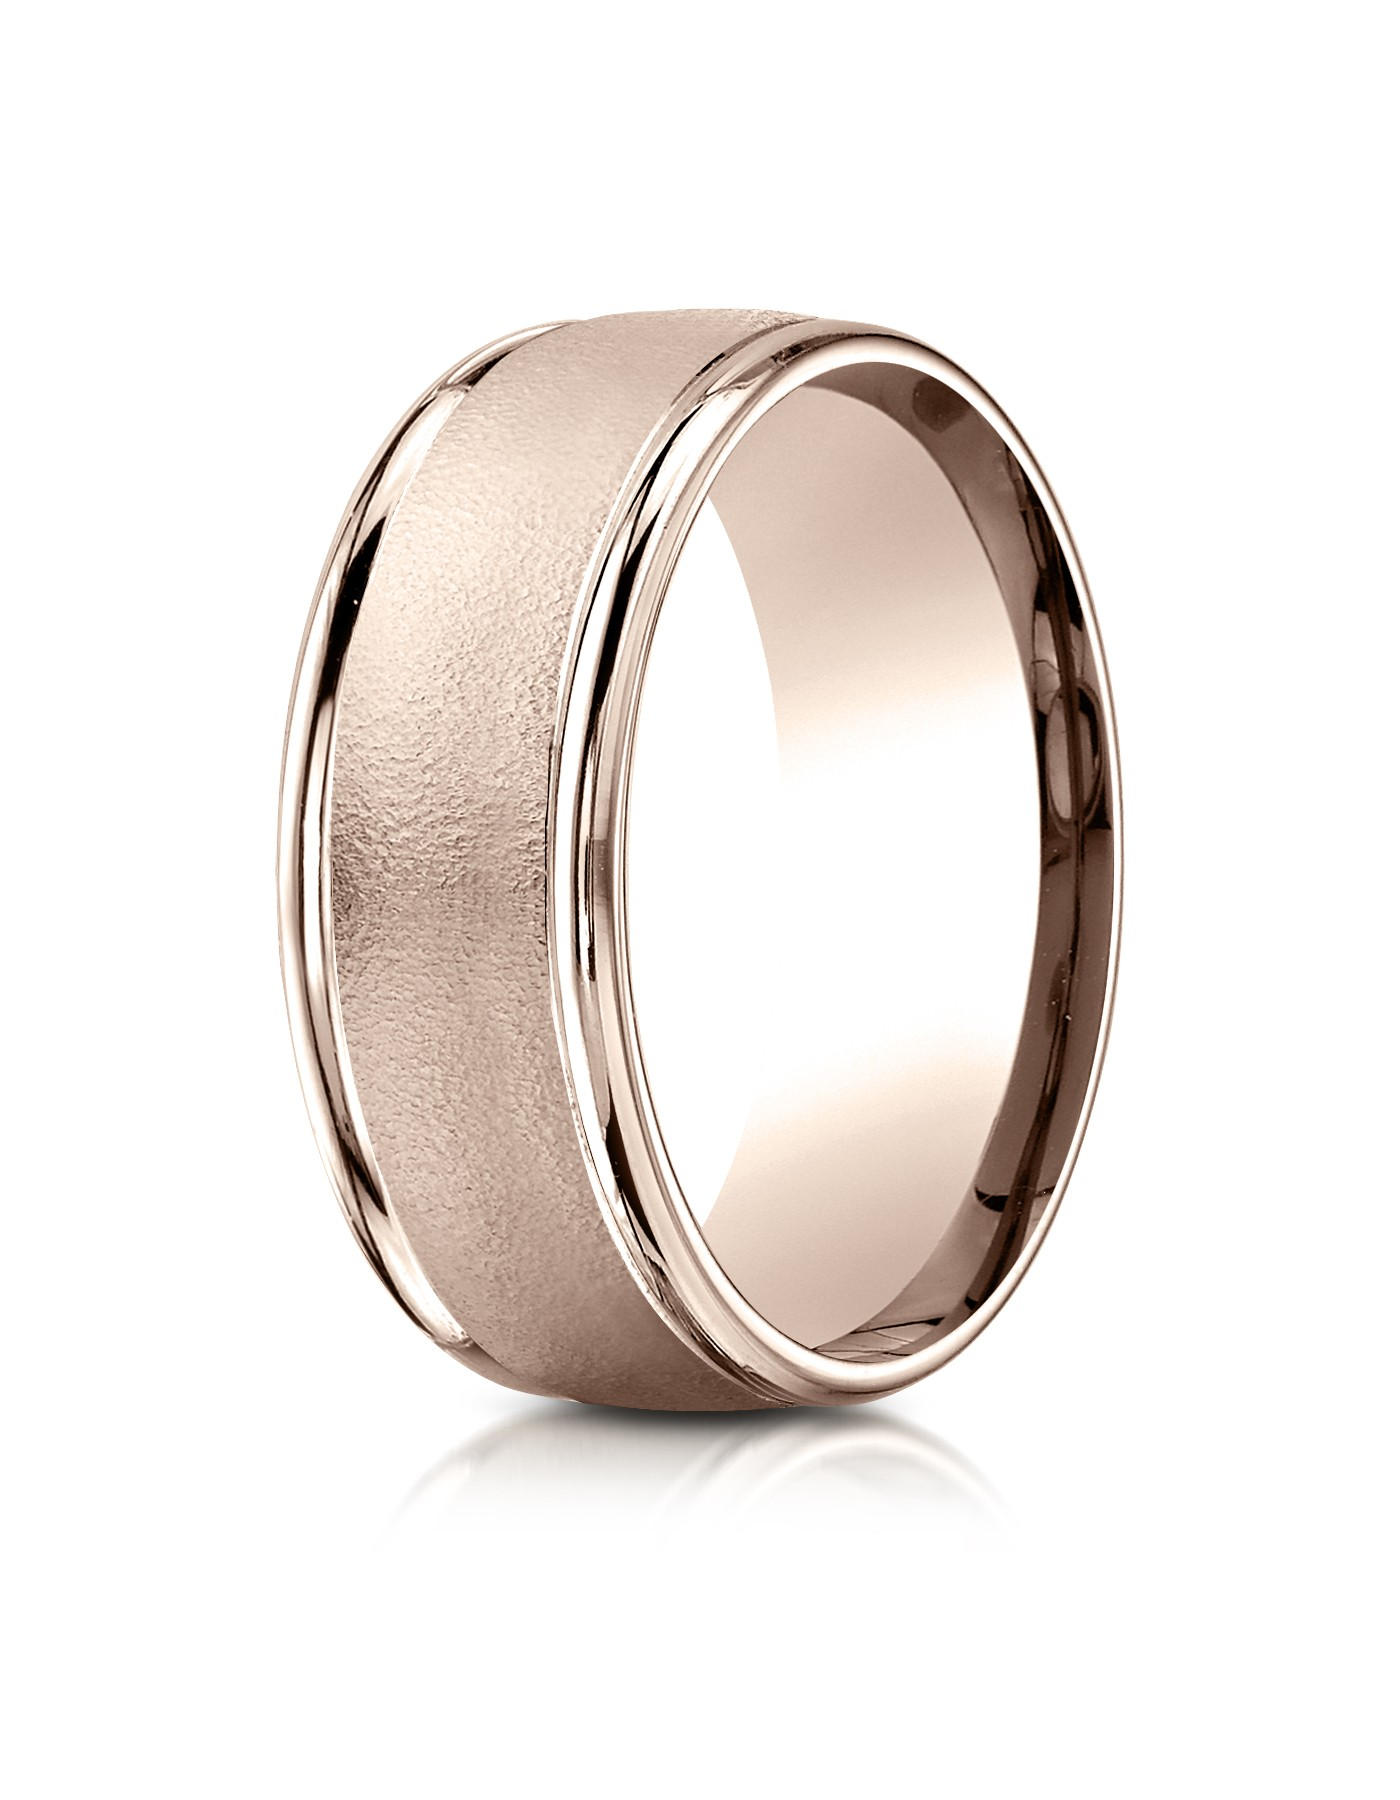 14k Rose Gold 8mm Comfort-fit Wire Brush Finish High Polished Round Edge Carved Design Band